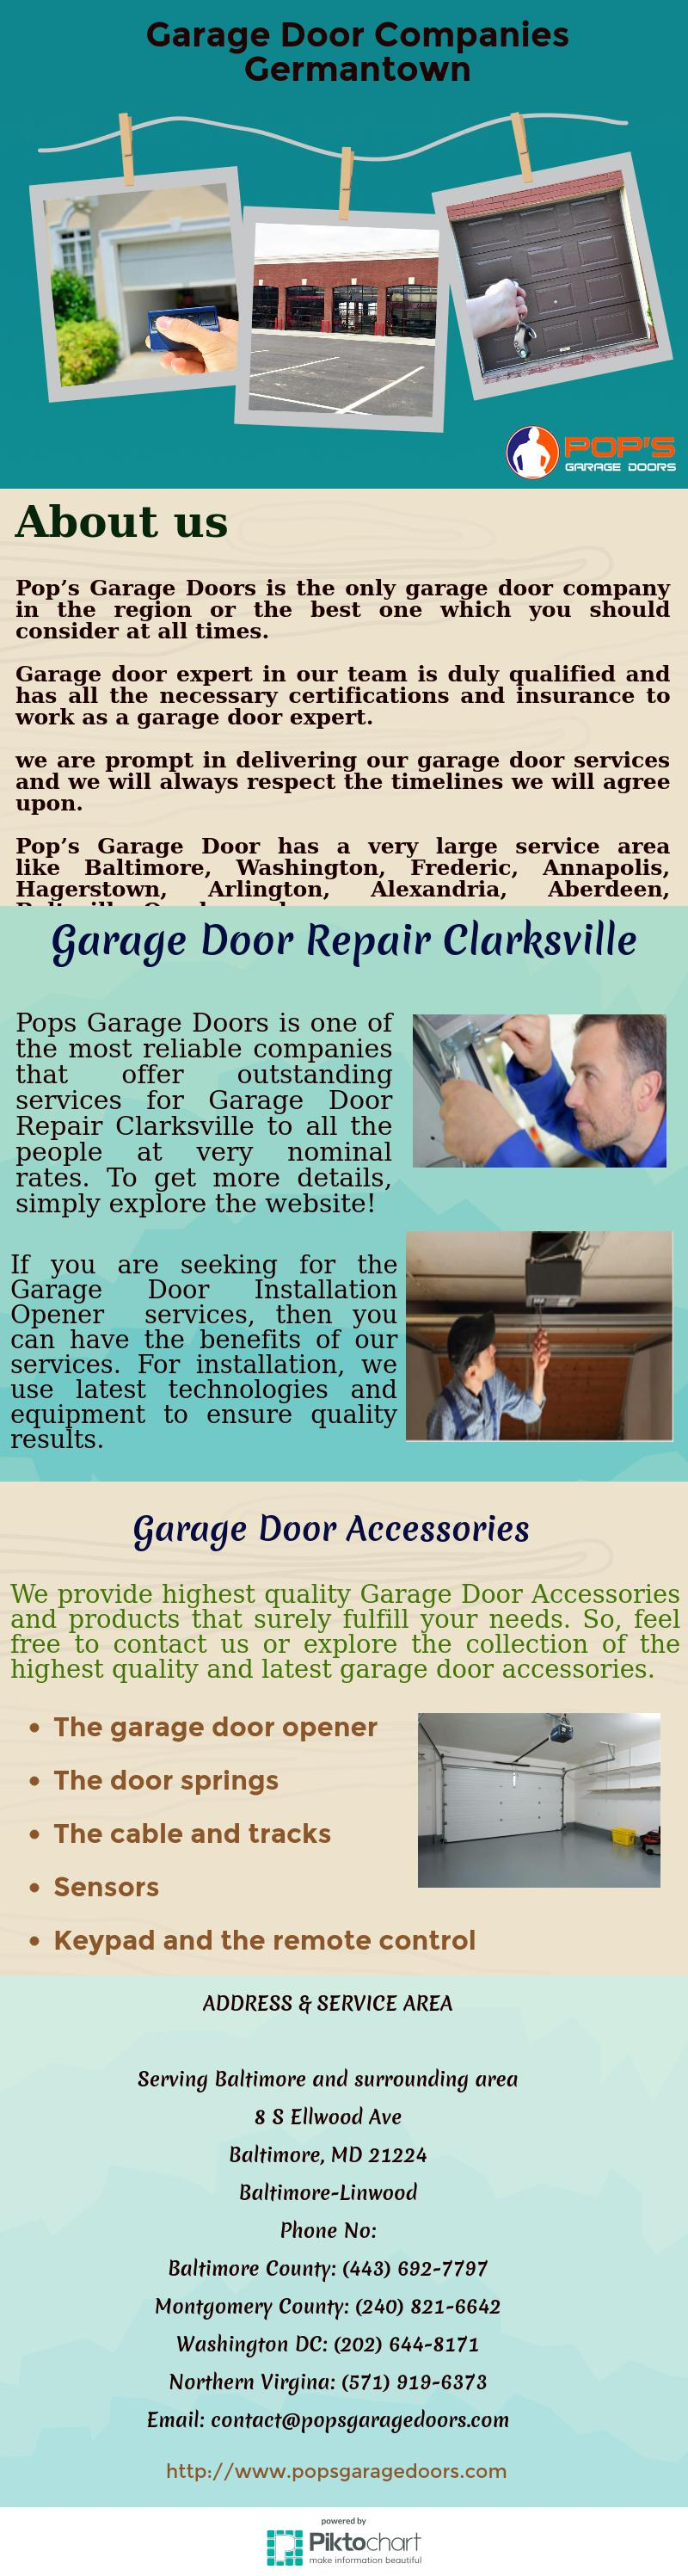 glamour perfect companies the to country garage how get opener for door you outstanding great choose lake started incredible